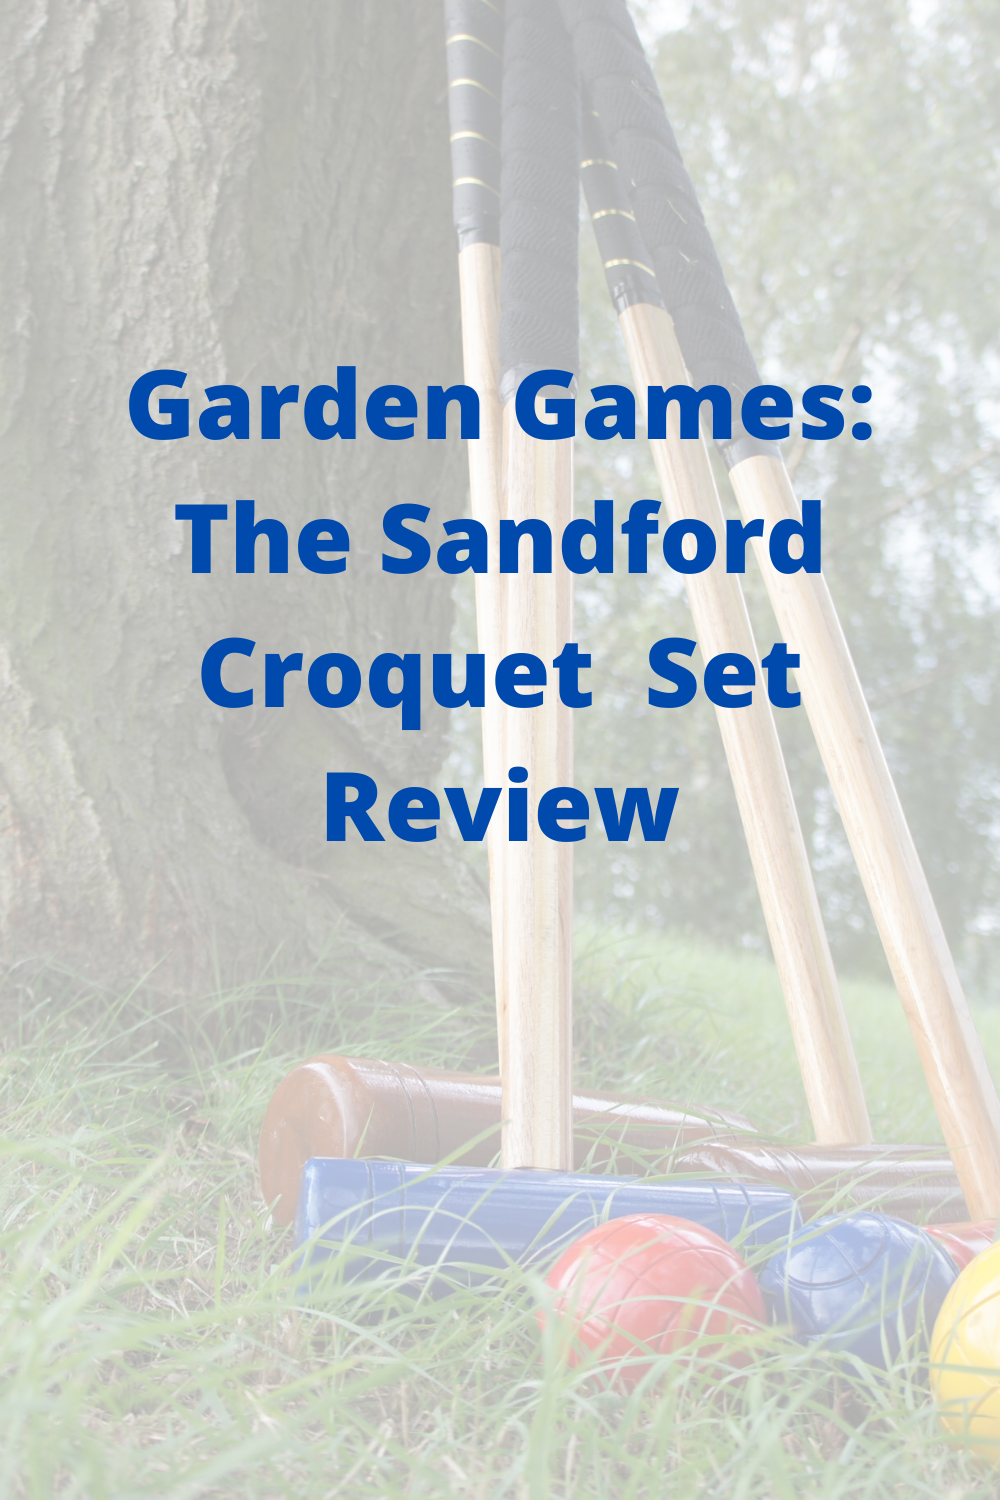 The Sandford Croquet Set Review